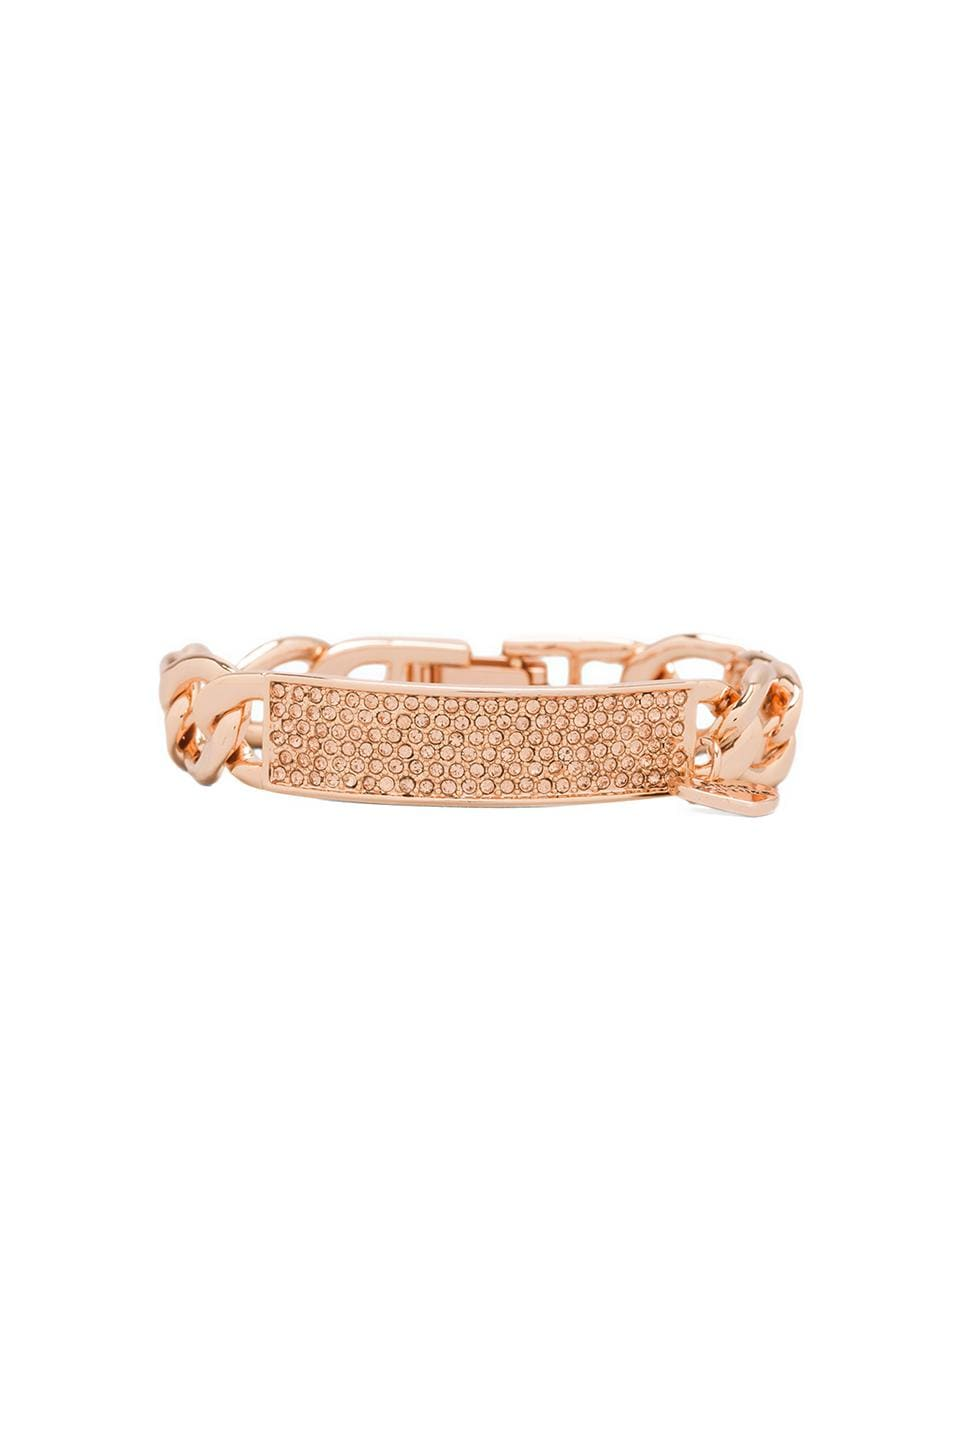 Juicy Couture Juicy ID Bracelet in Rose Gold